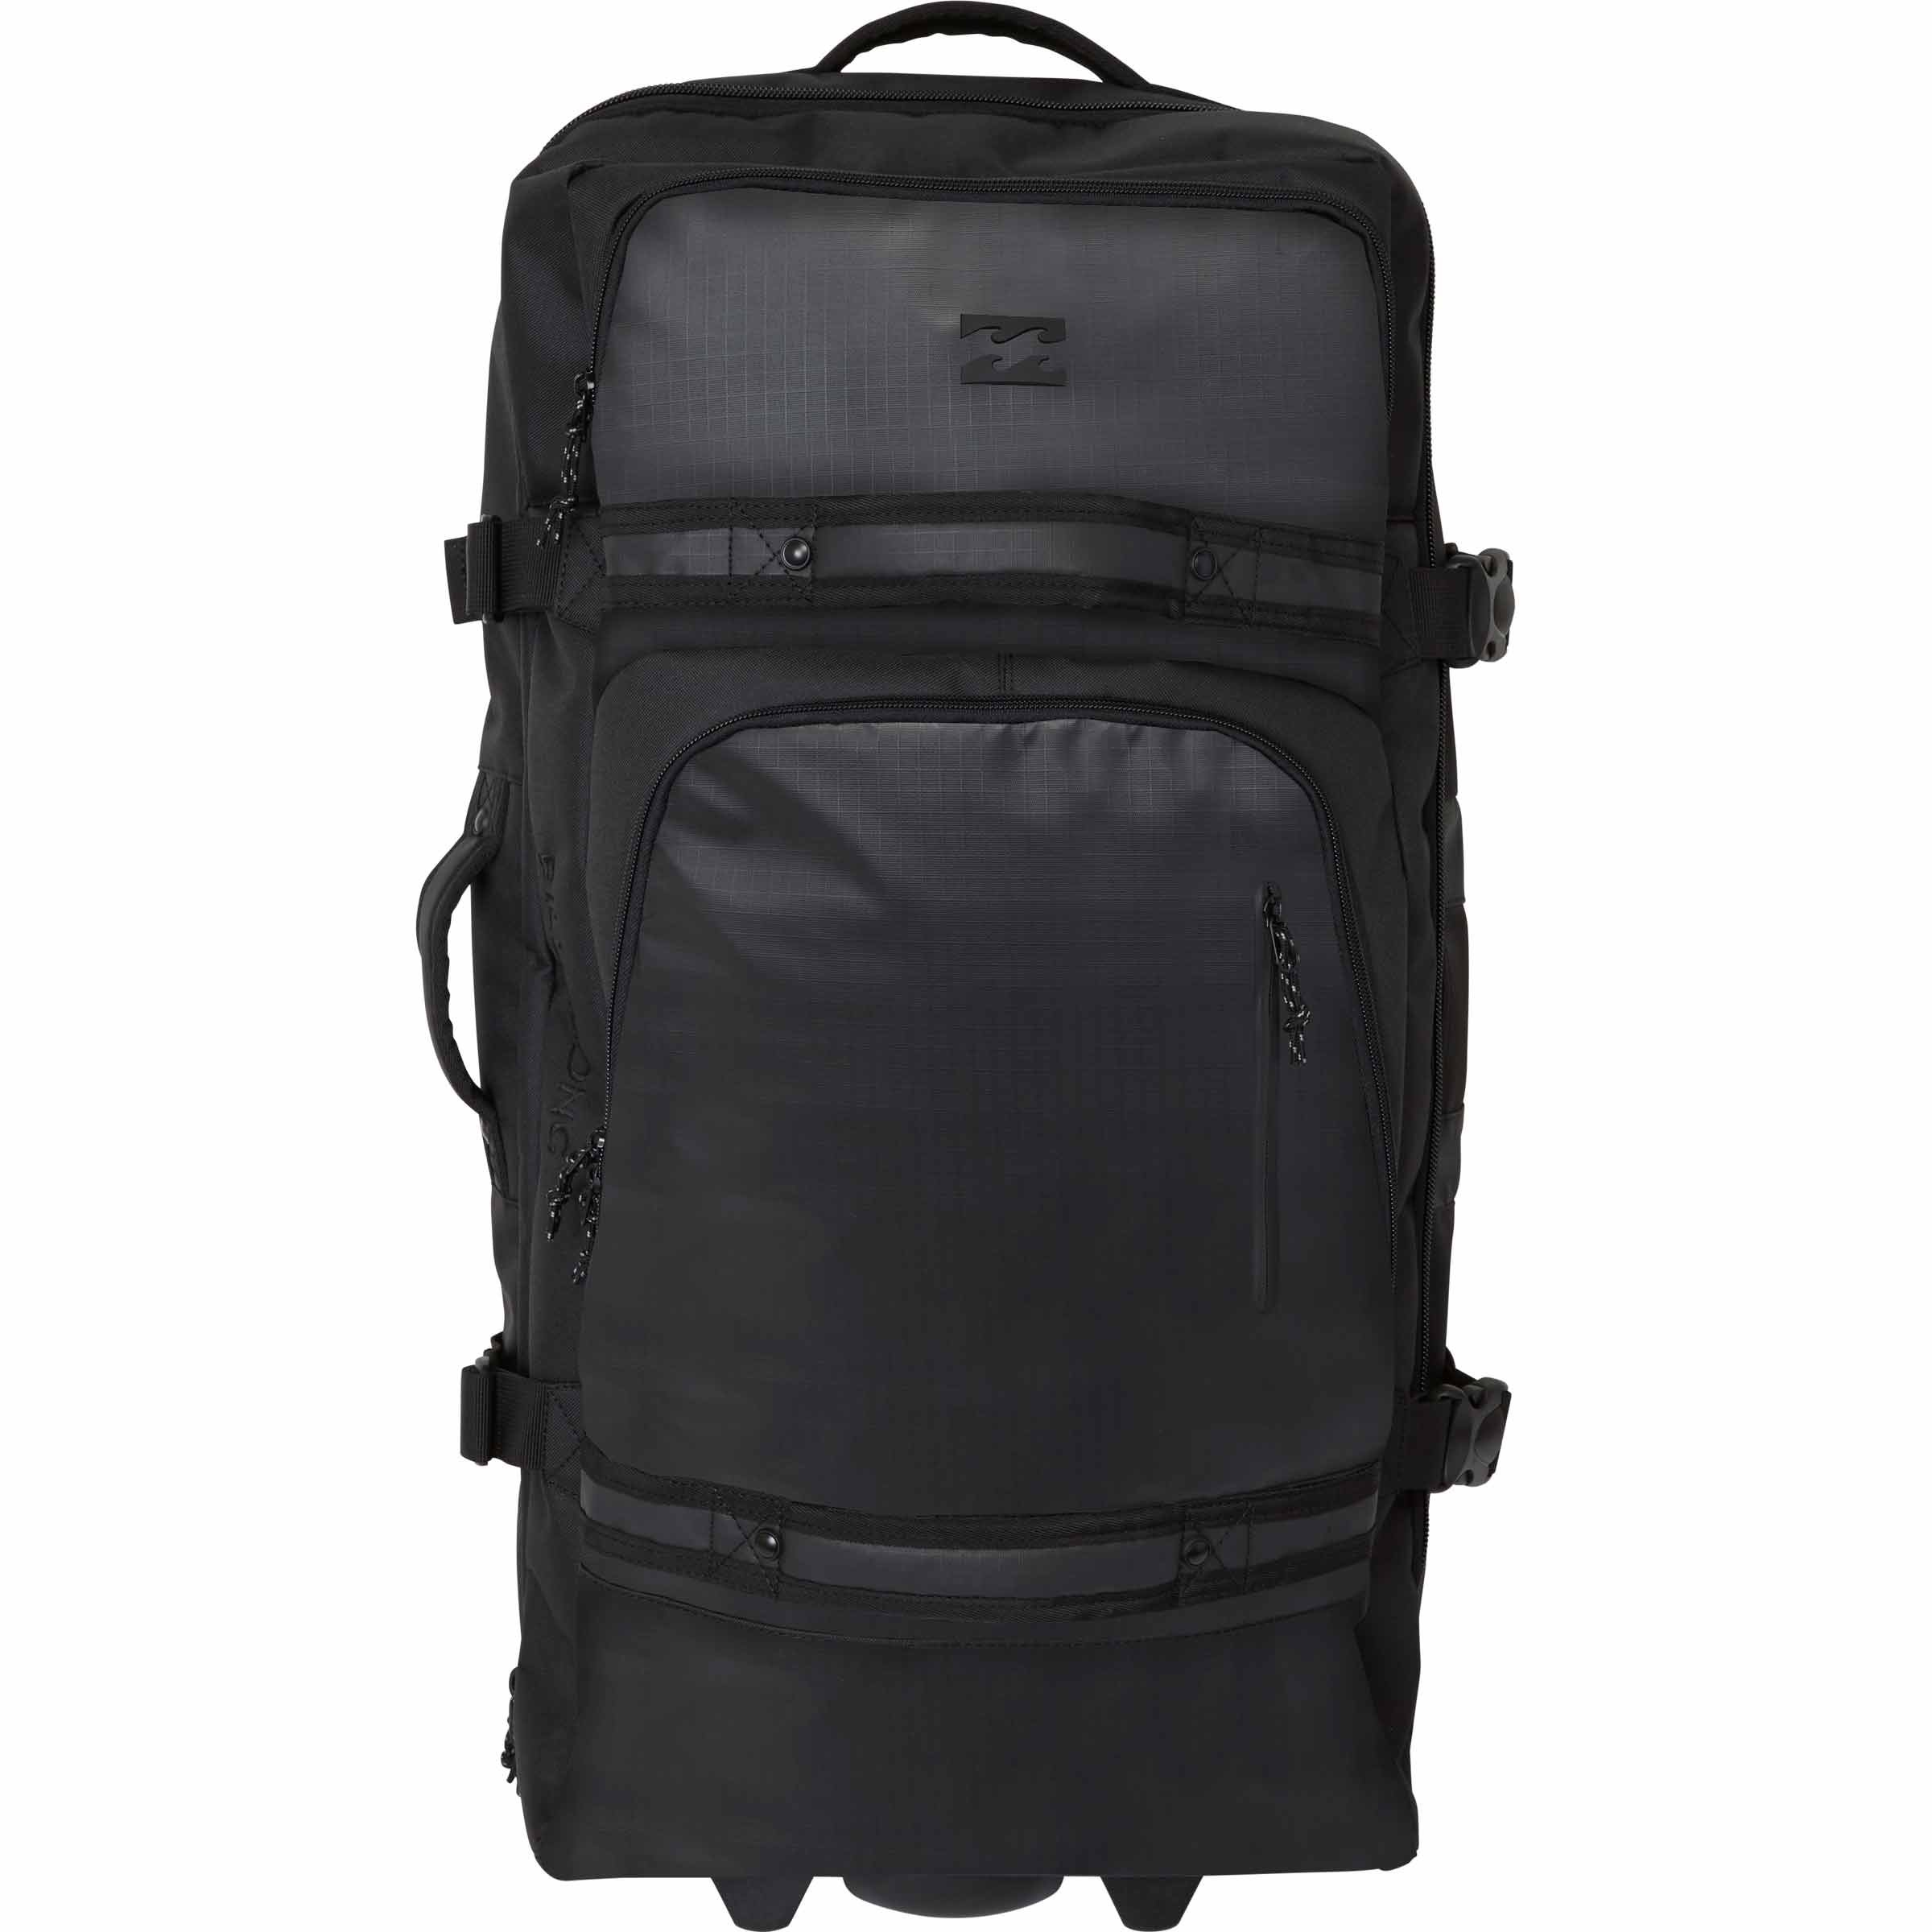 Billabong Men's Booster 110l Travel Accessory, -Stealth, ONE